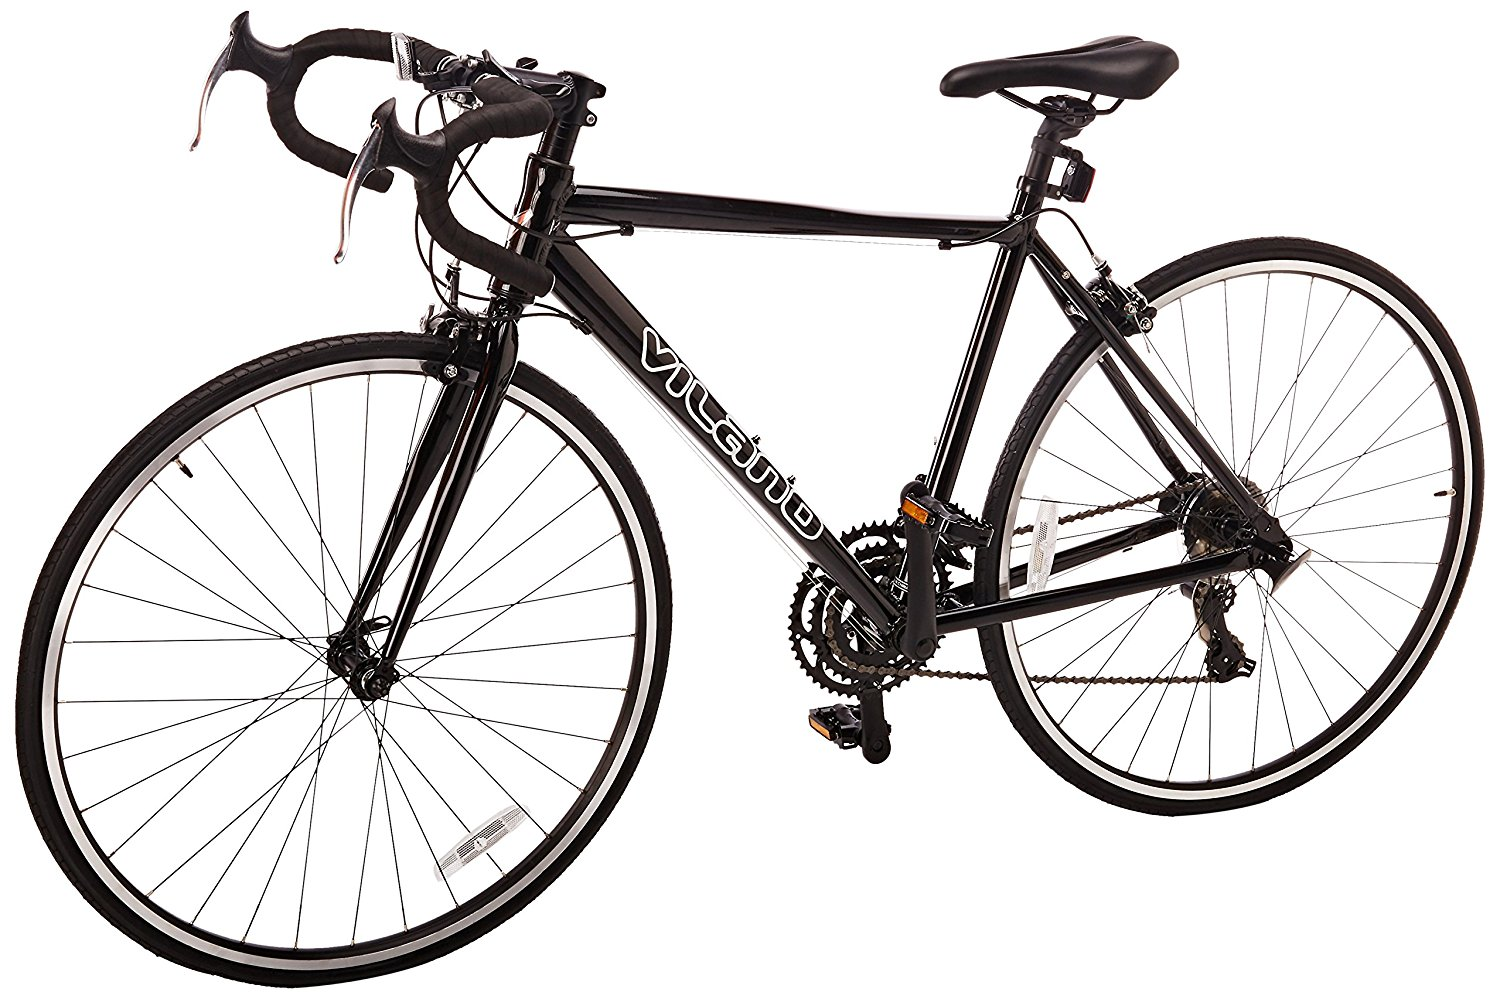 Best Entry-Level Road Bikes of 2018 - Under $500 / $1,000